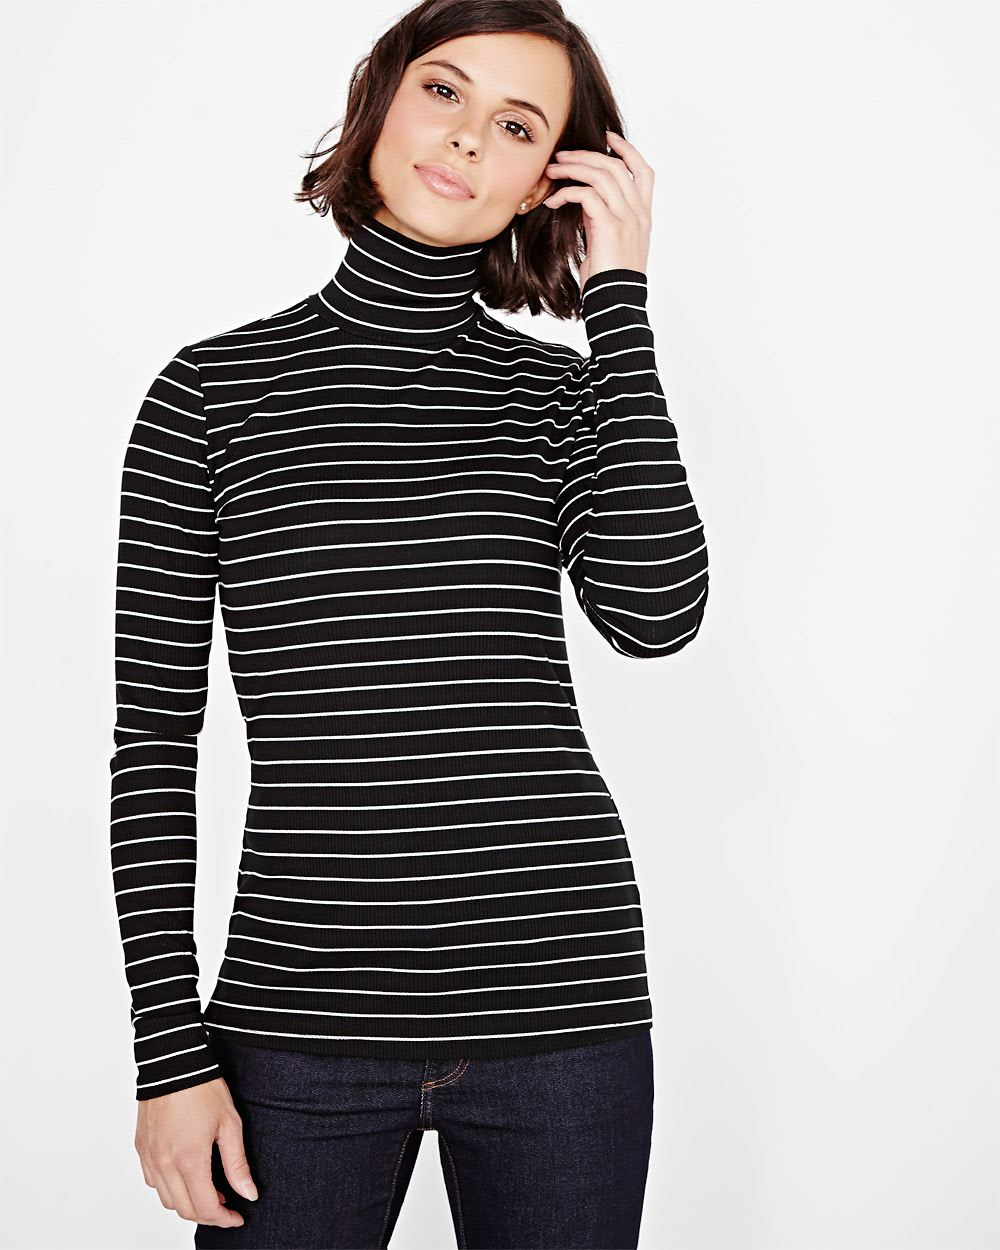 Striped turtleneck t shirt rw co for Turtleneck under t shirt